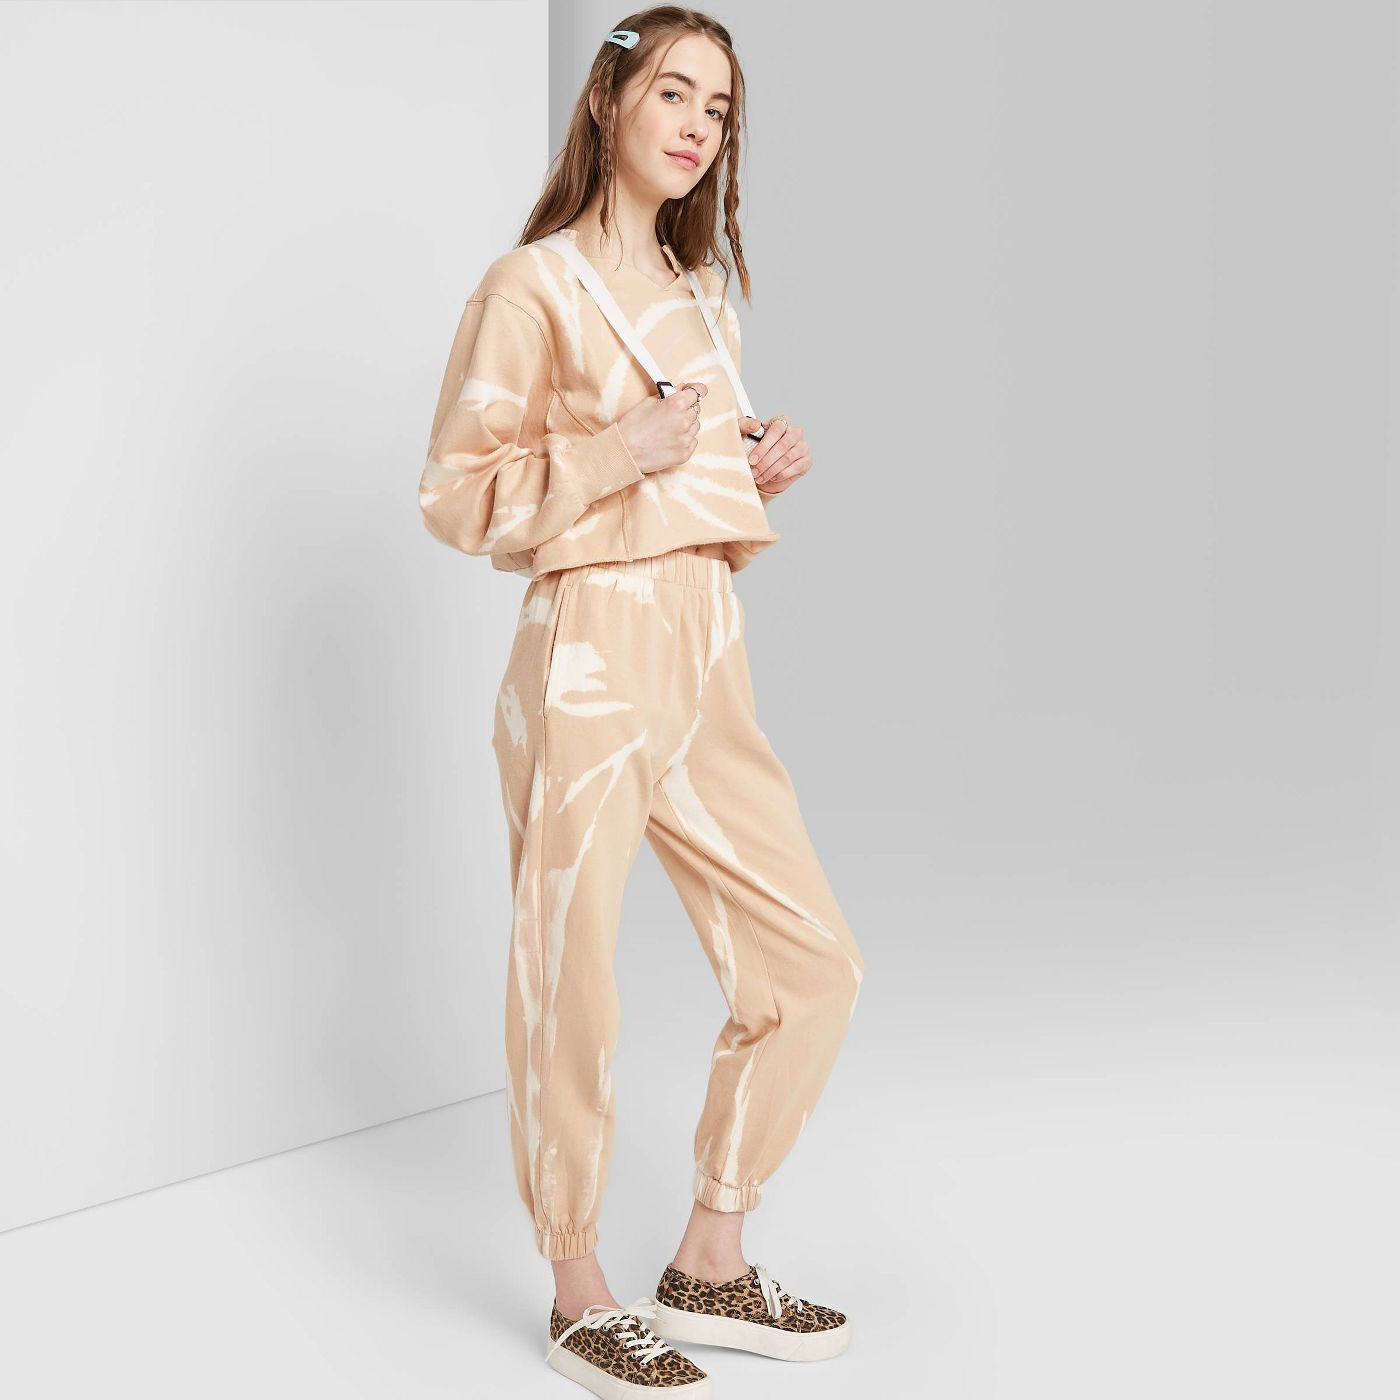 Slip into one of these adorably chic and on trend Loungewear Sets and Matching Sweatsuits, look cute as could be from the comfort of your sofa, and and stay on budget. These adorable and under $50 cozy and chic sets will get you through the season in total comfort! | glitterinc.com | @glitterinc // Wild Fable Women's High-Rise Tie-Dye Sweatpants and Crop Sweatshirt